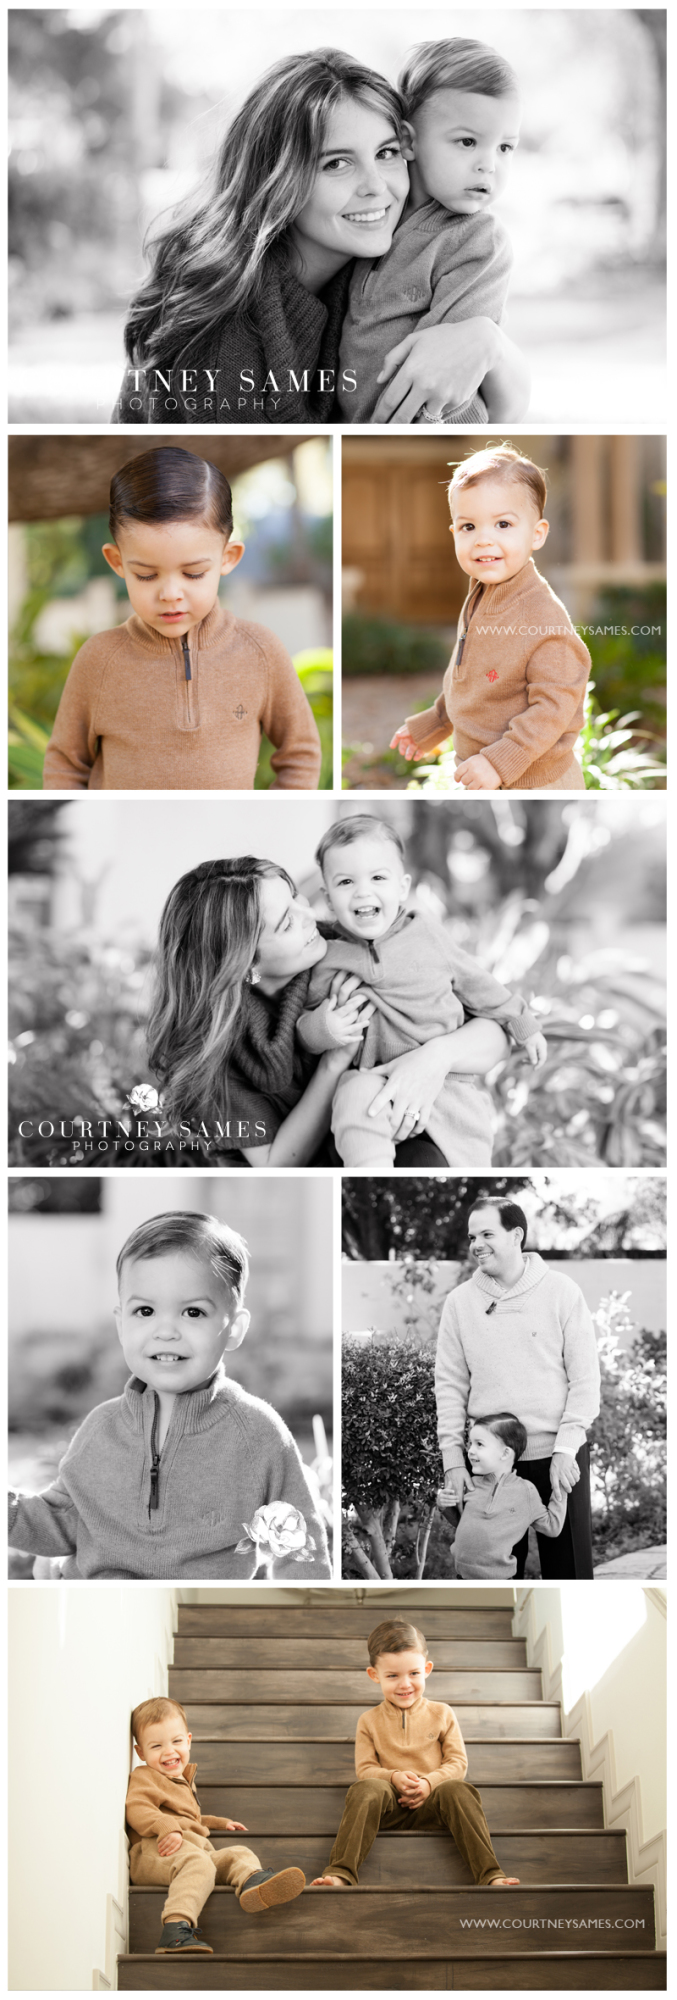 Family Portrait Photography – Austin, Texas